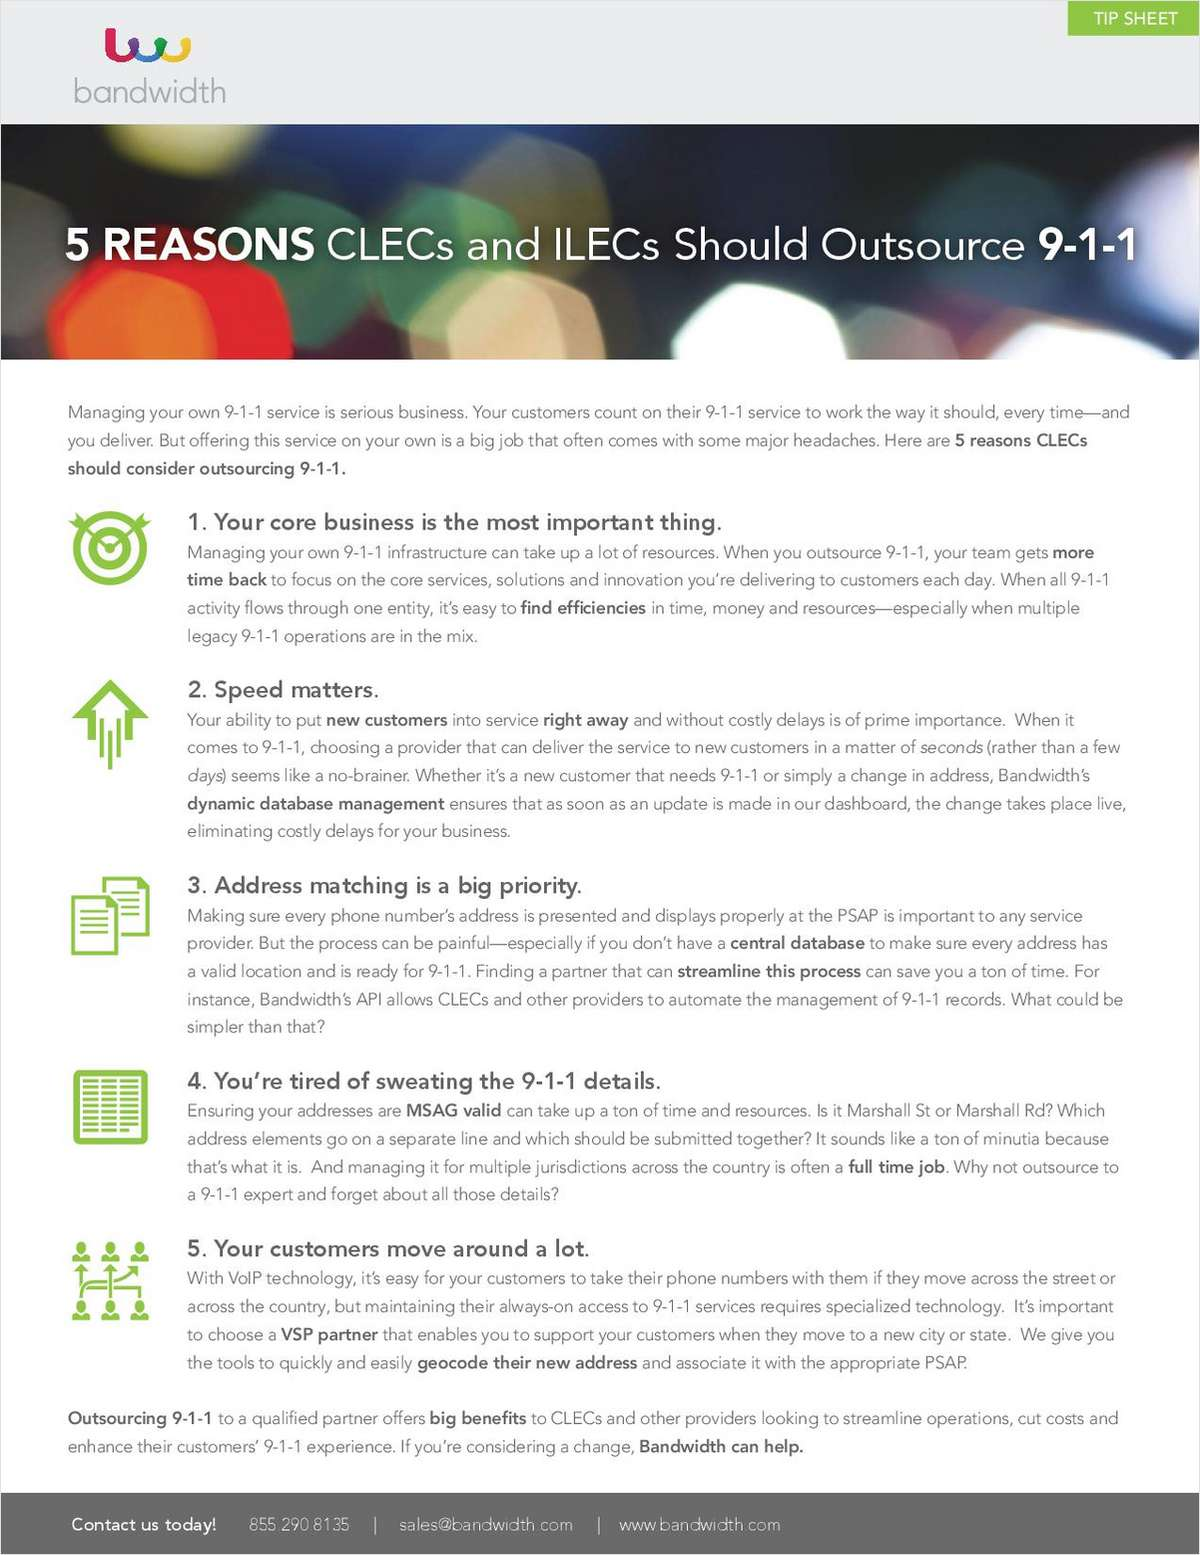 5 Reasons CLECs and ILECS Should Outsource 9-1-1